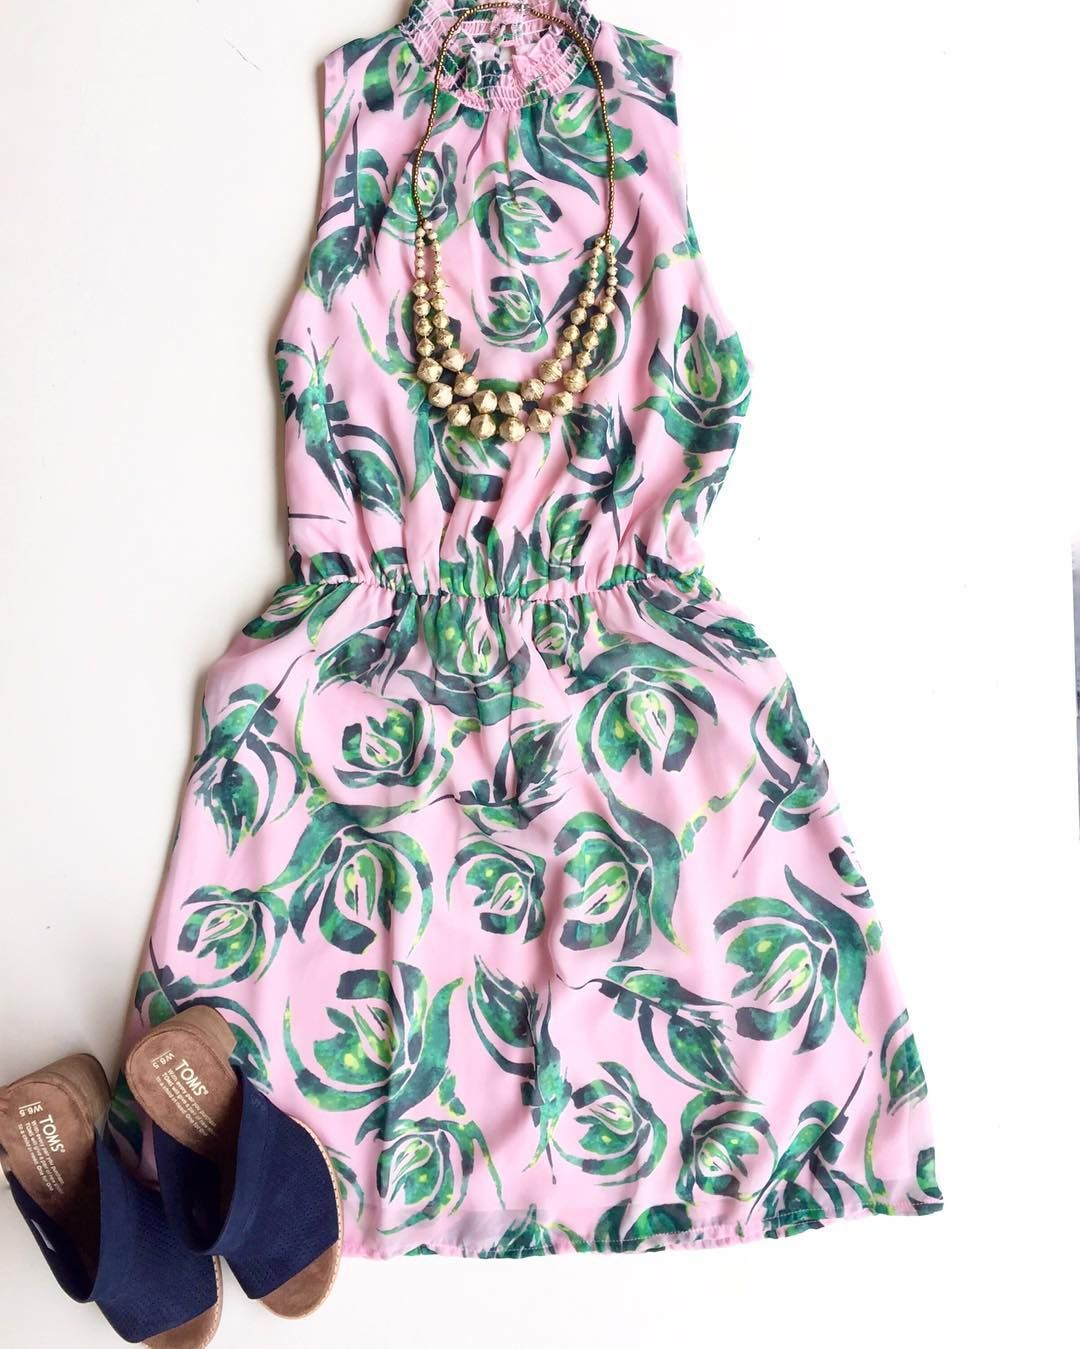 """This easy-breezy patterned dress is giving us Spring fever!  Come shop Spring dresses in-store. #shopwithpurpose"""